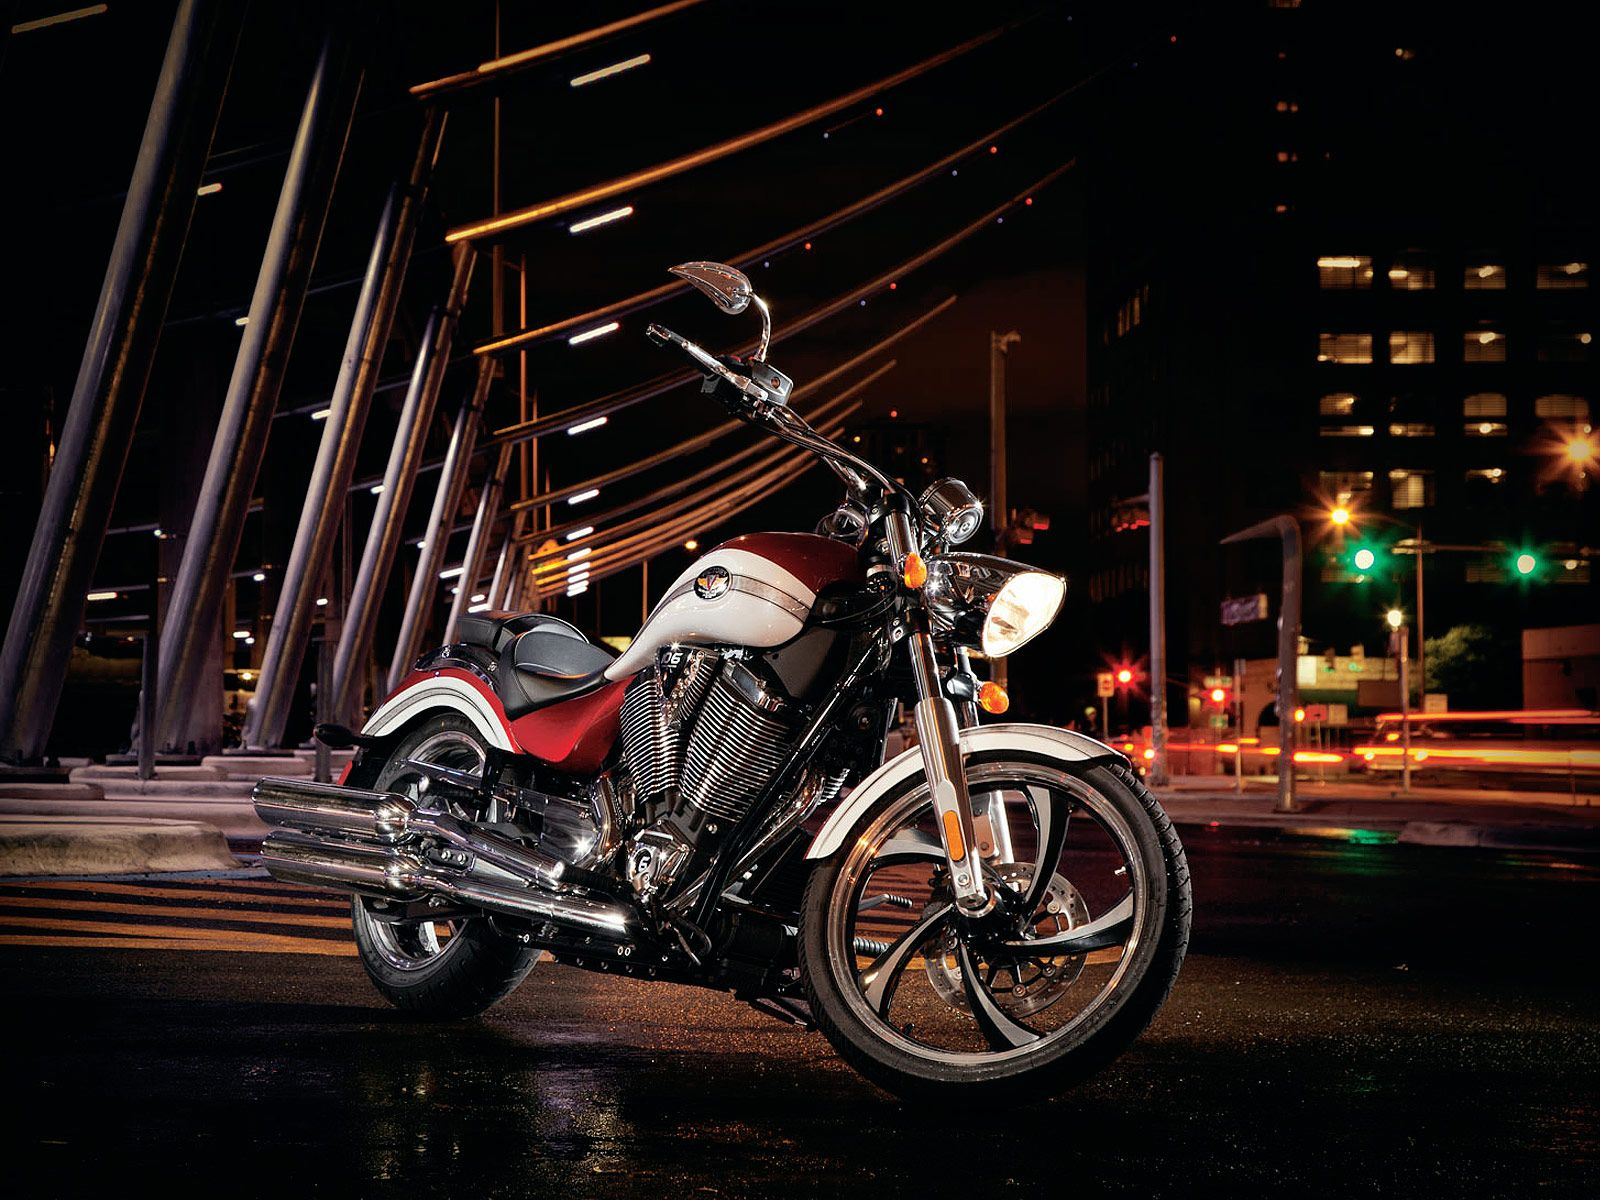 2012 Victory Vegas Accident Lawyers Info Motorcycle Wallpaper